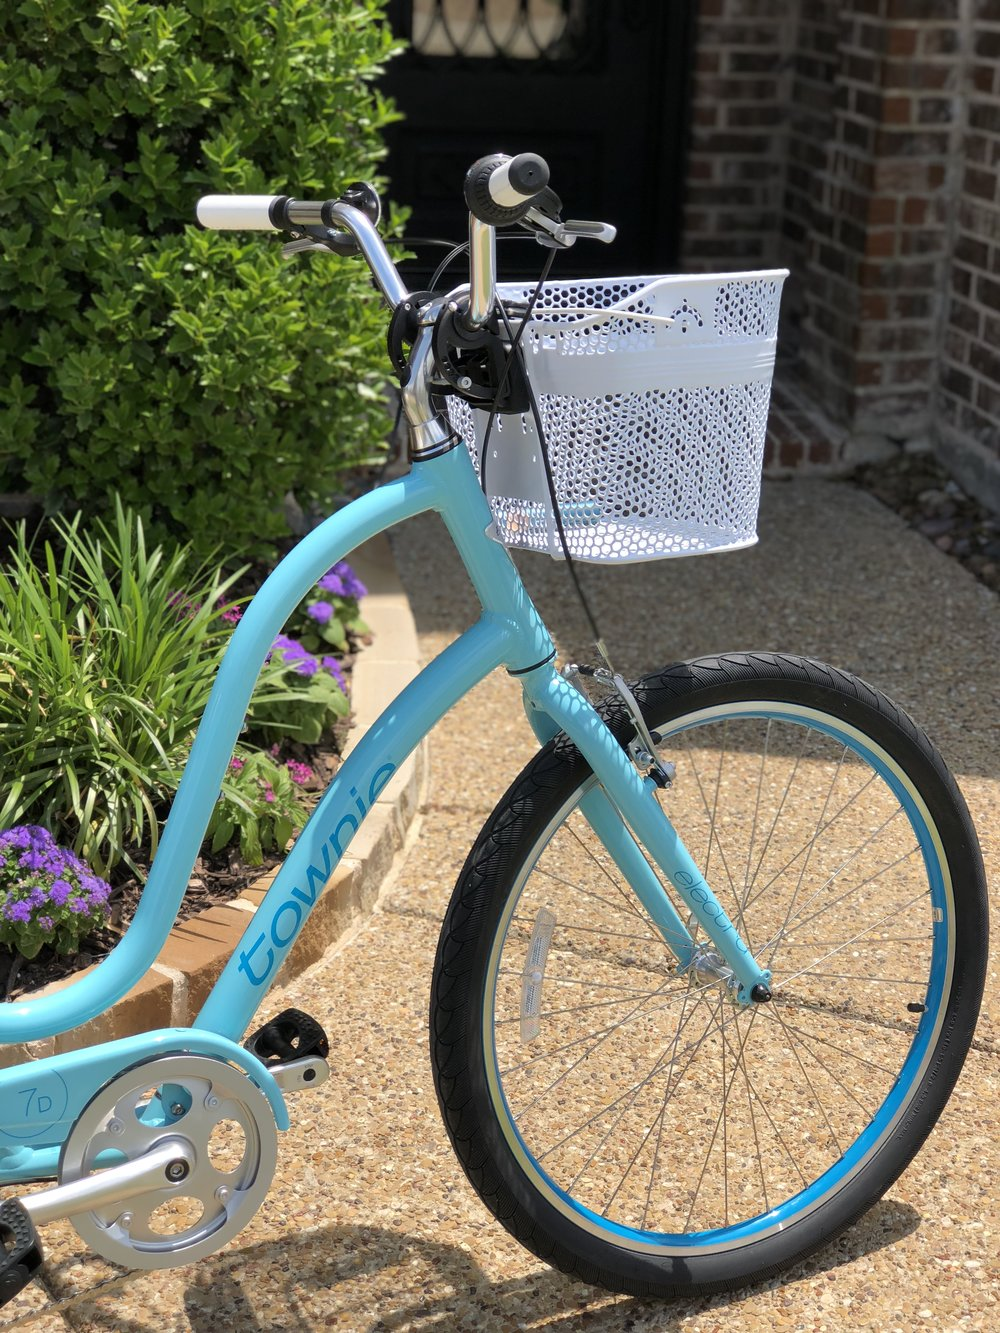 Must- Have Basket Attachment for the Townie!